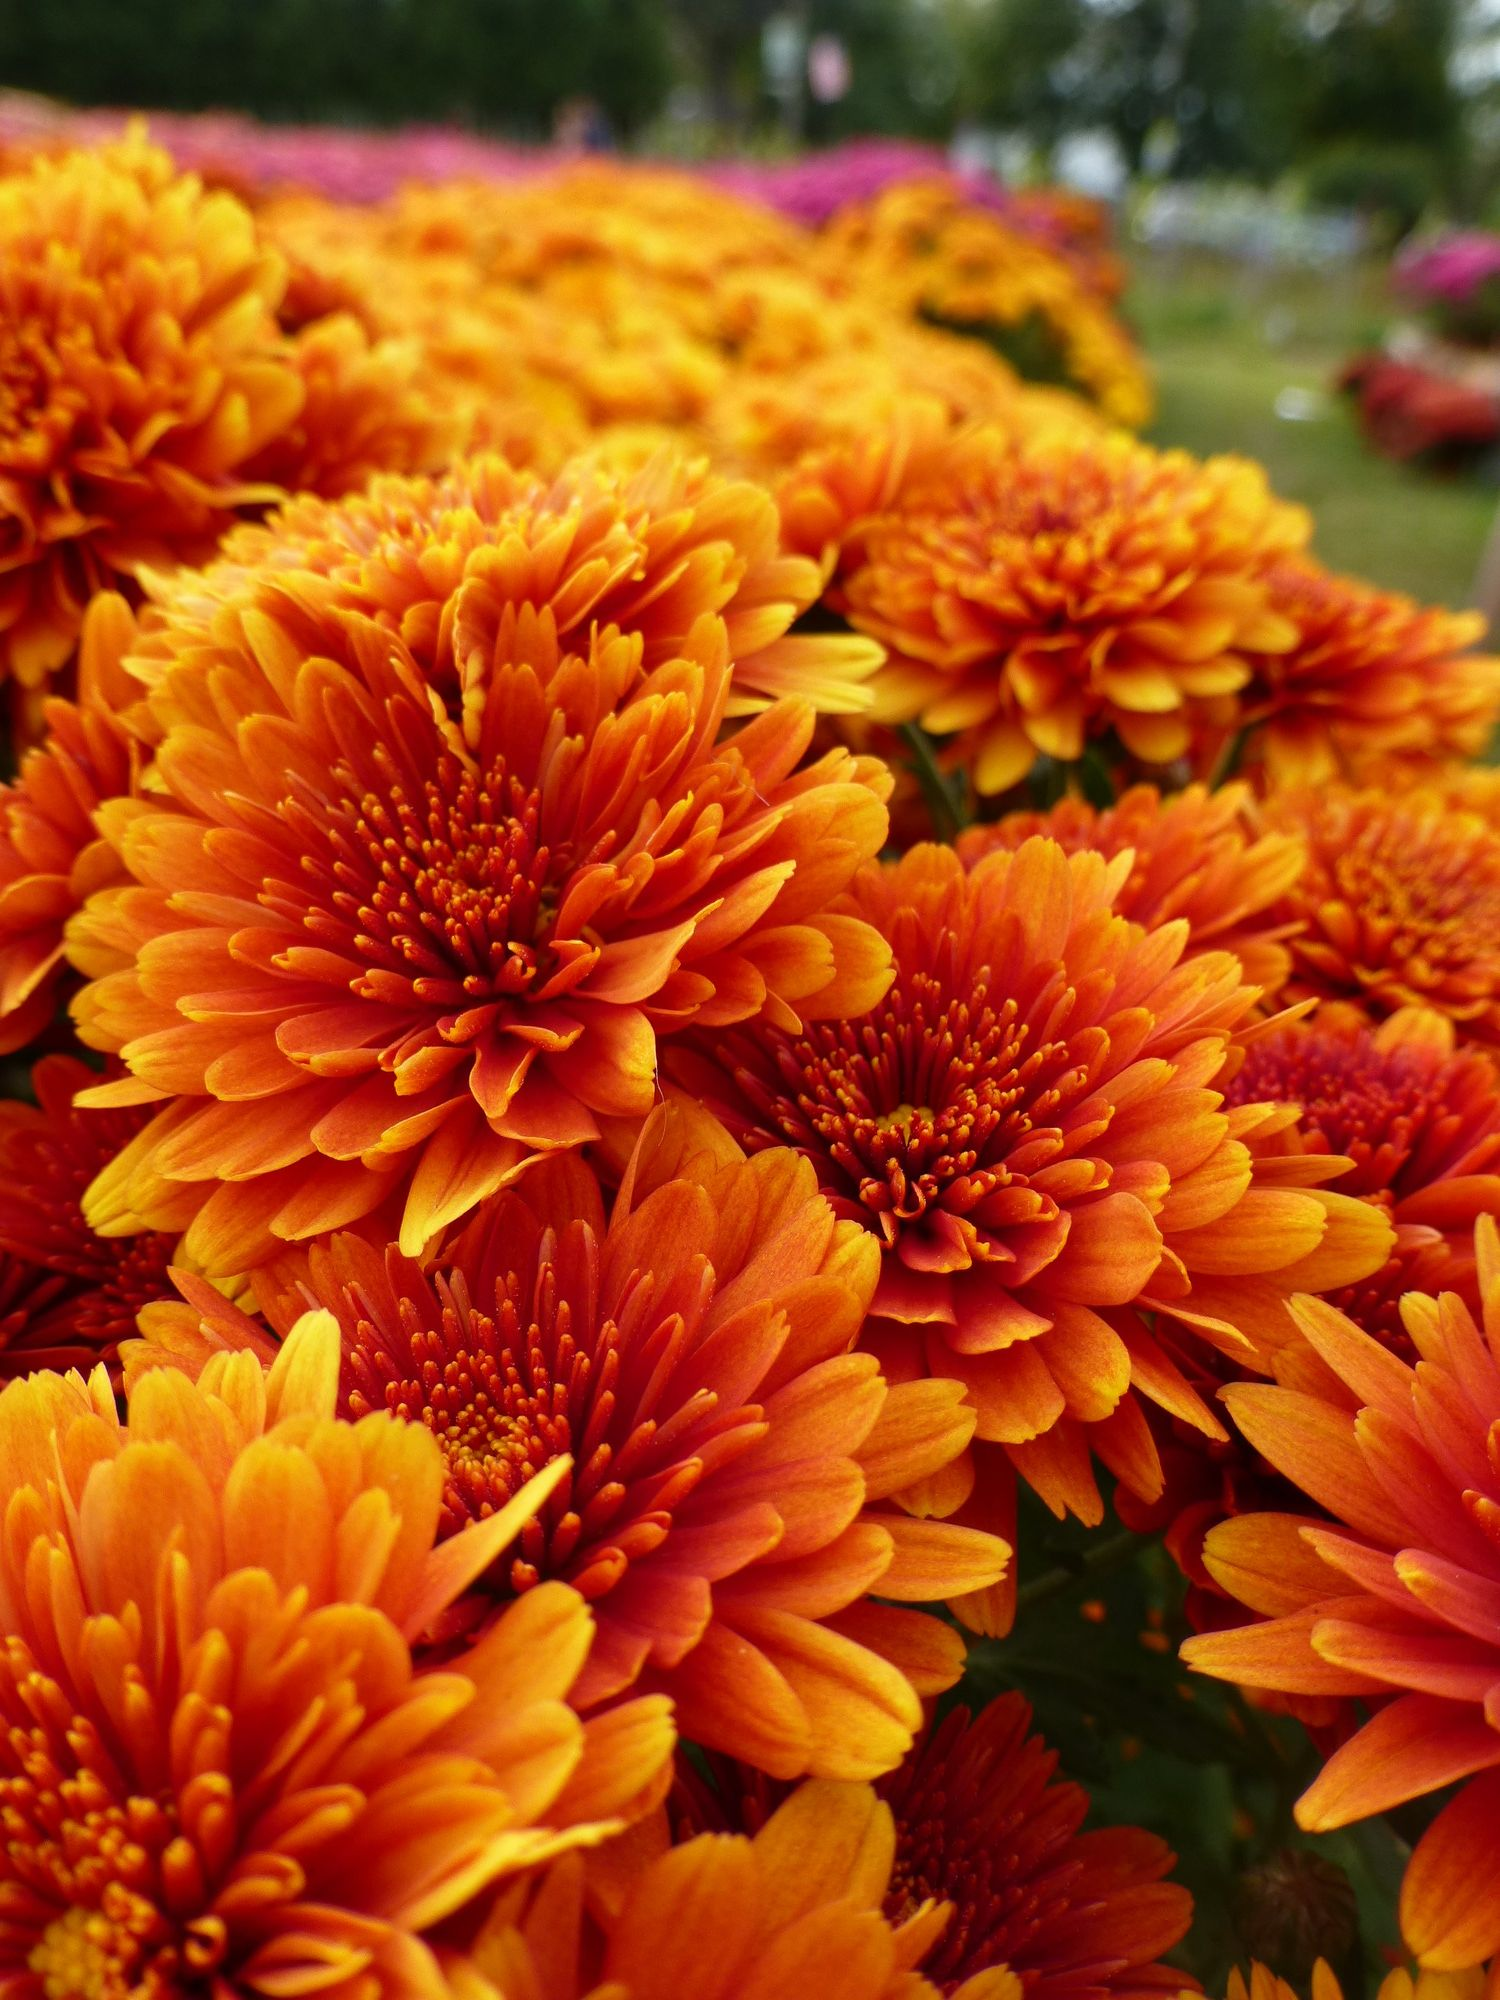 Mums are in full bloom this season at Crossroads.